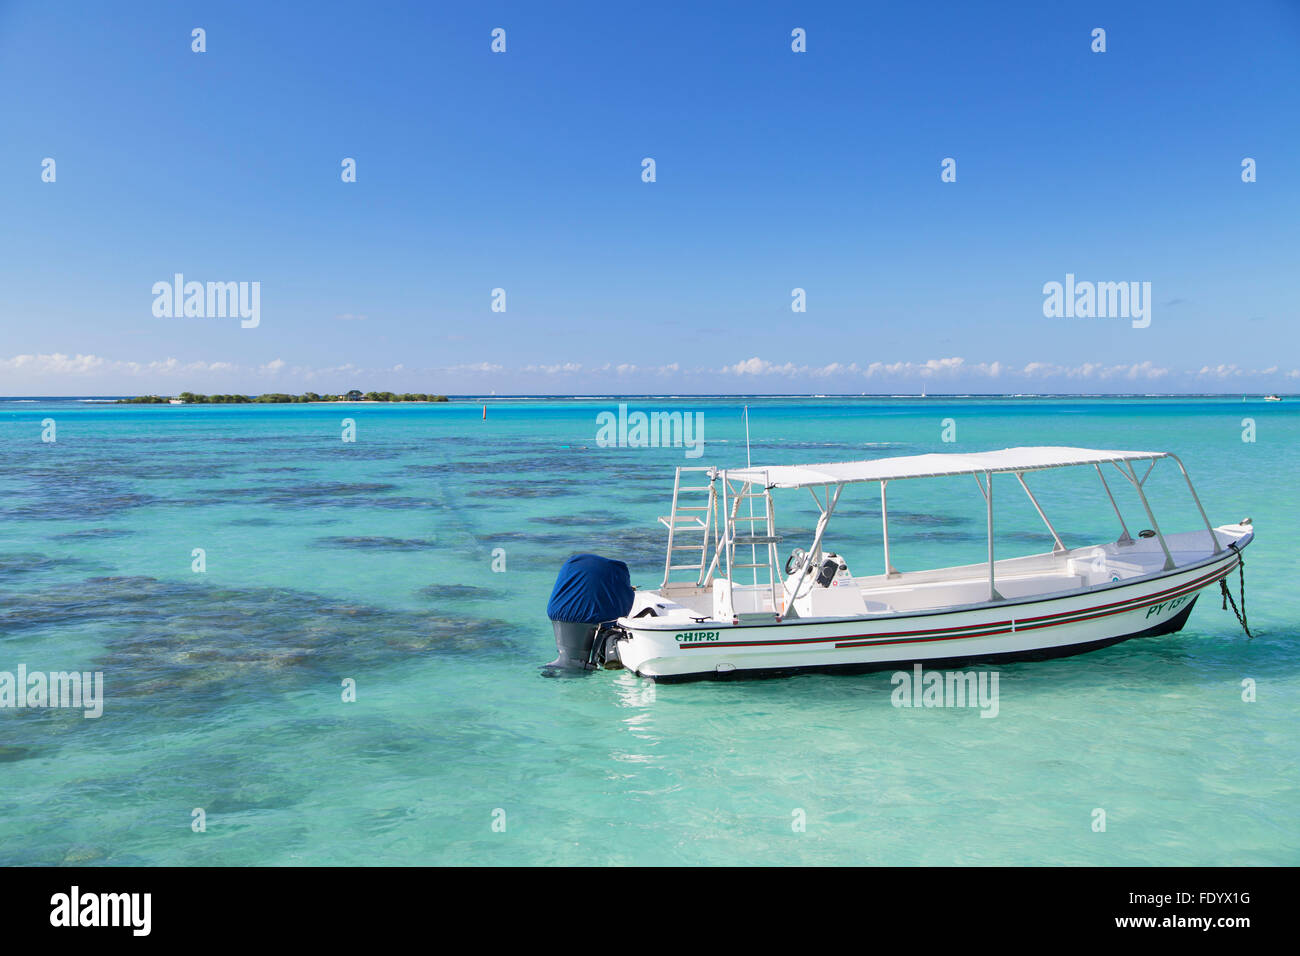 Hauru Point, Mo'orea, Society Islands, French Polynesia - Stock Image